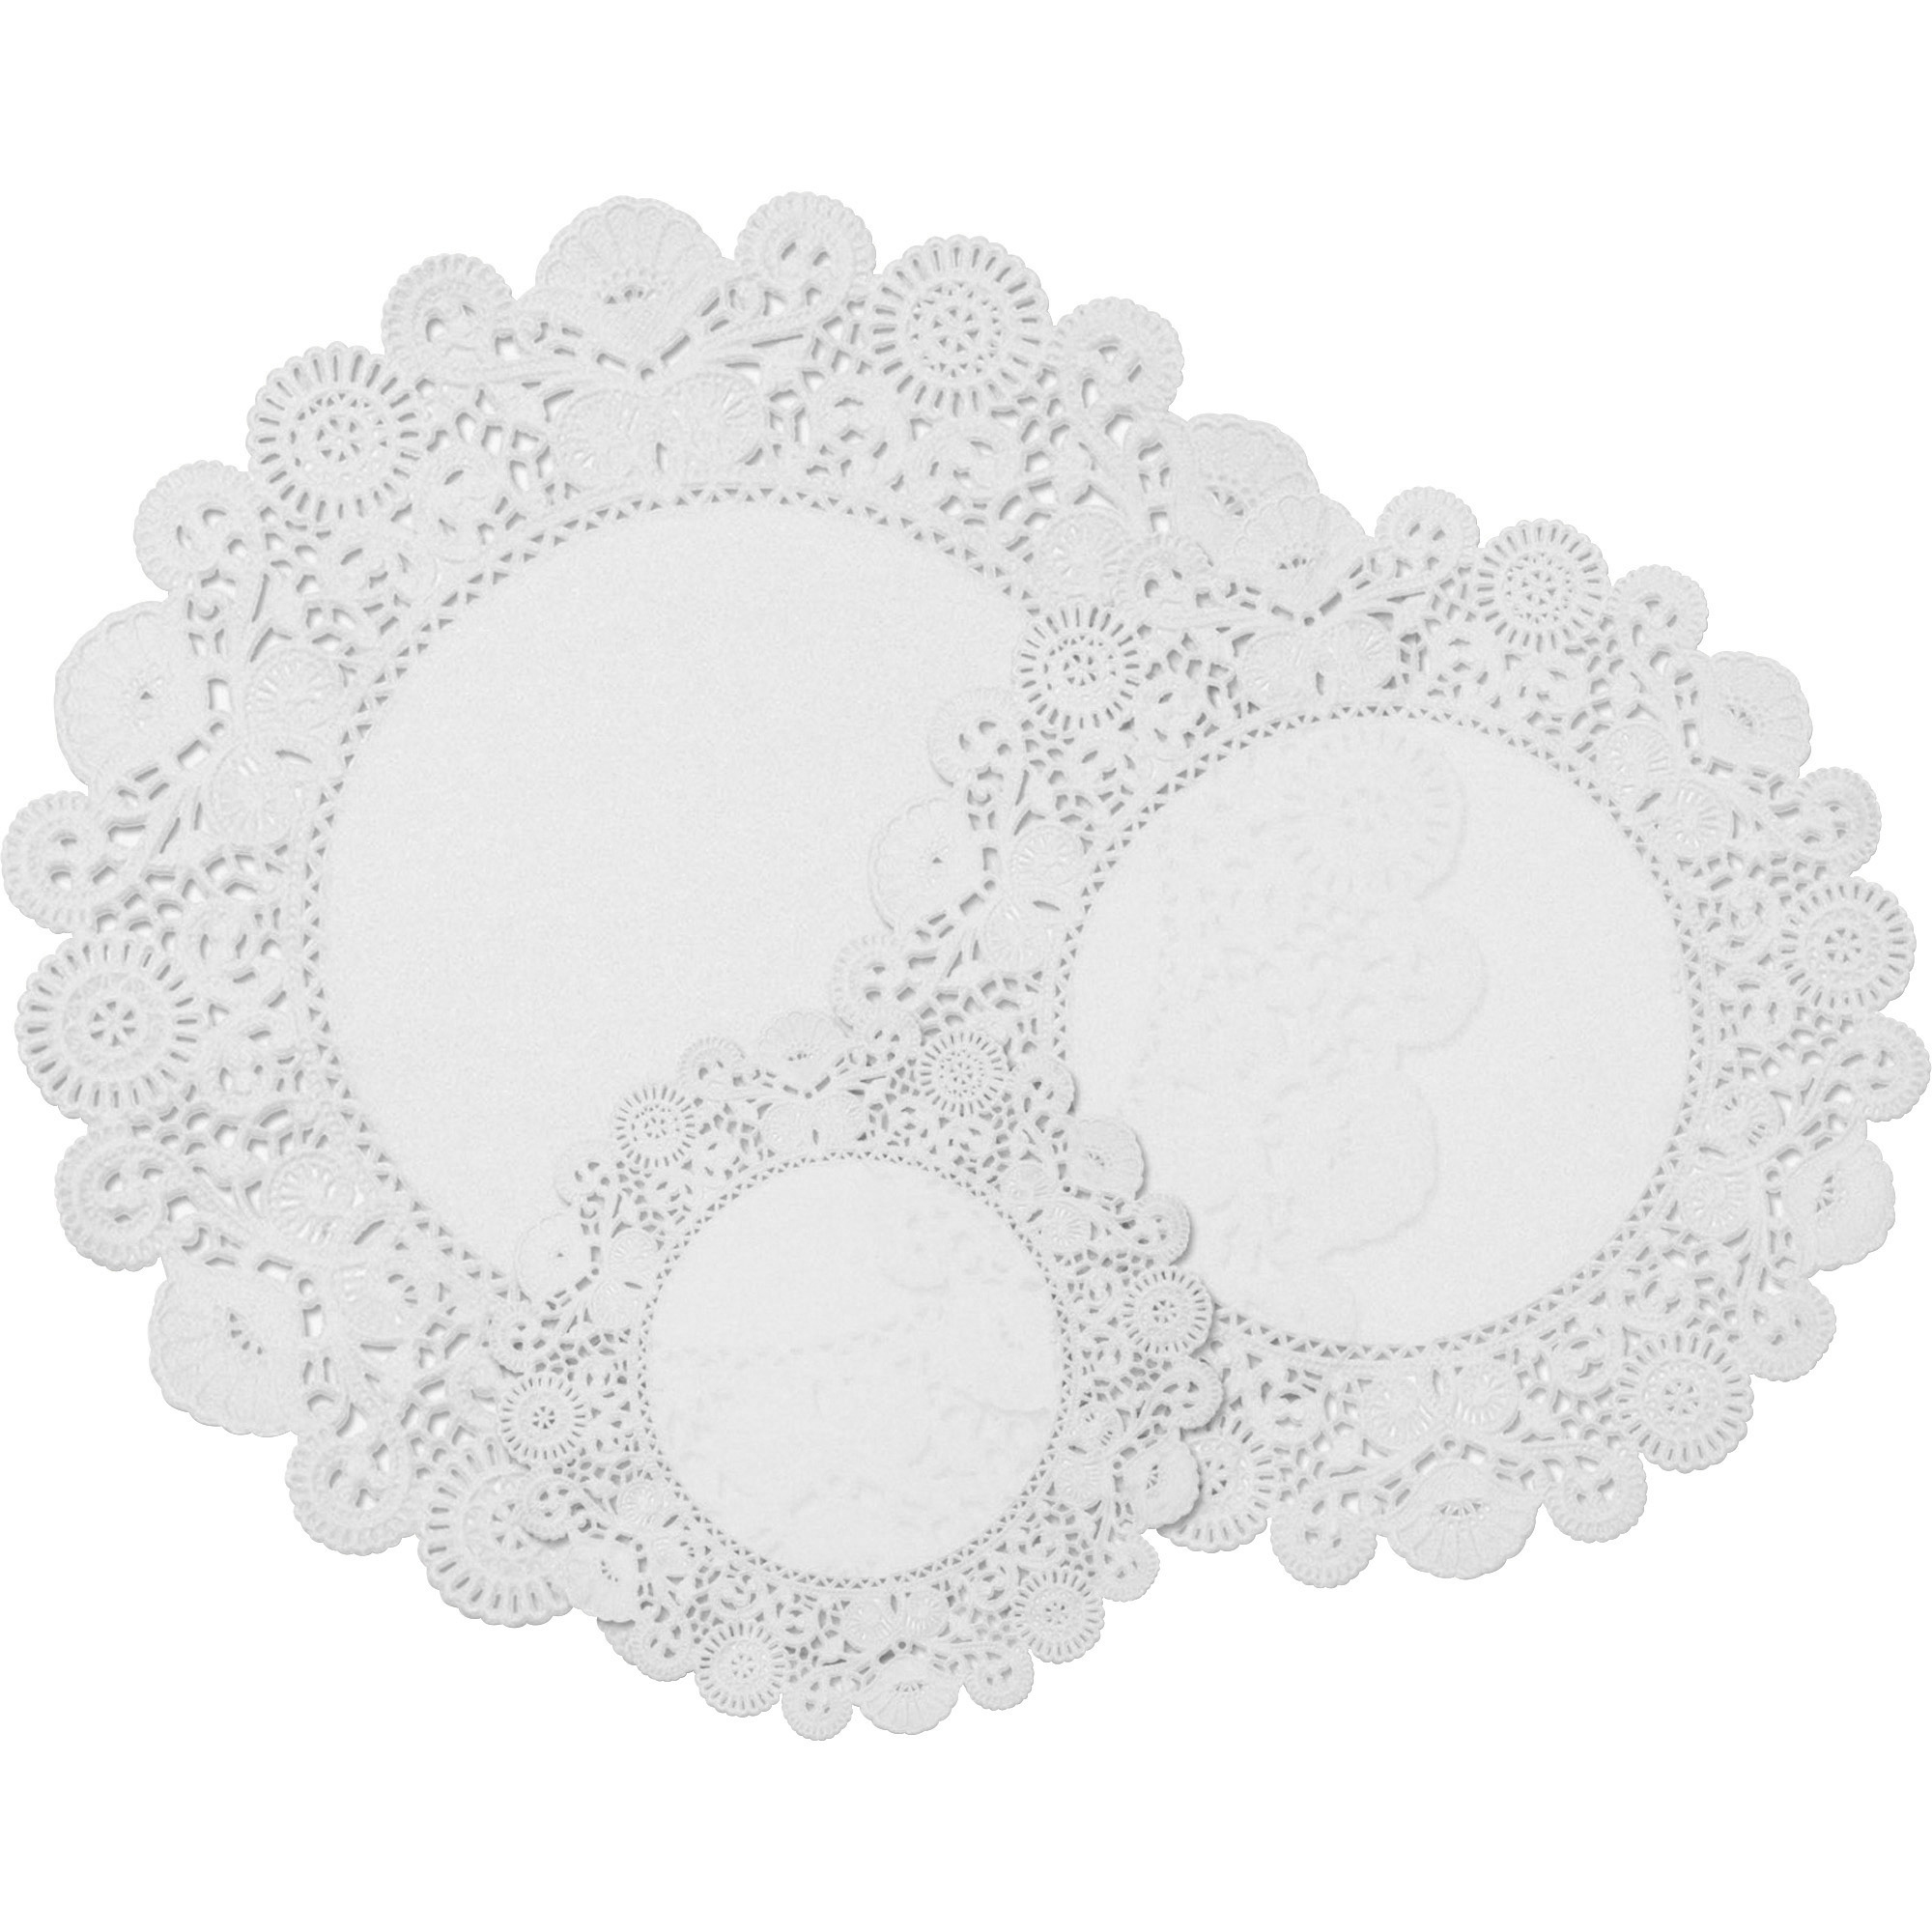 3 Pretty Designs of Craft Paper Doilies Pacon 25500 Pacon Deluxe Art Tex Doilies Pac25500 Pac 25500